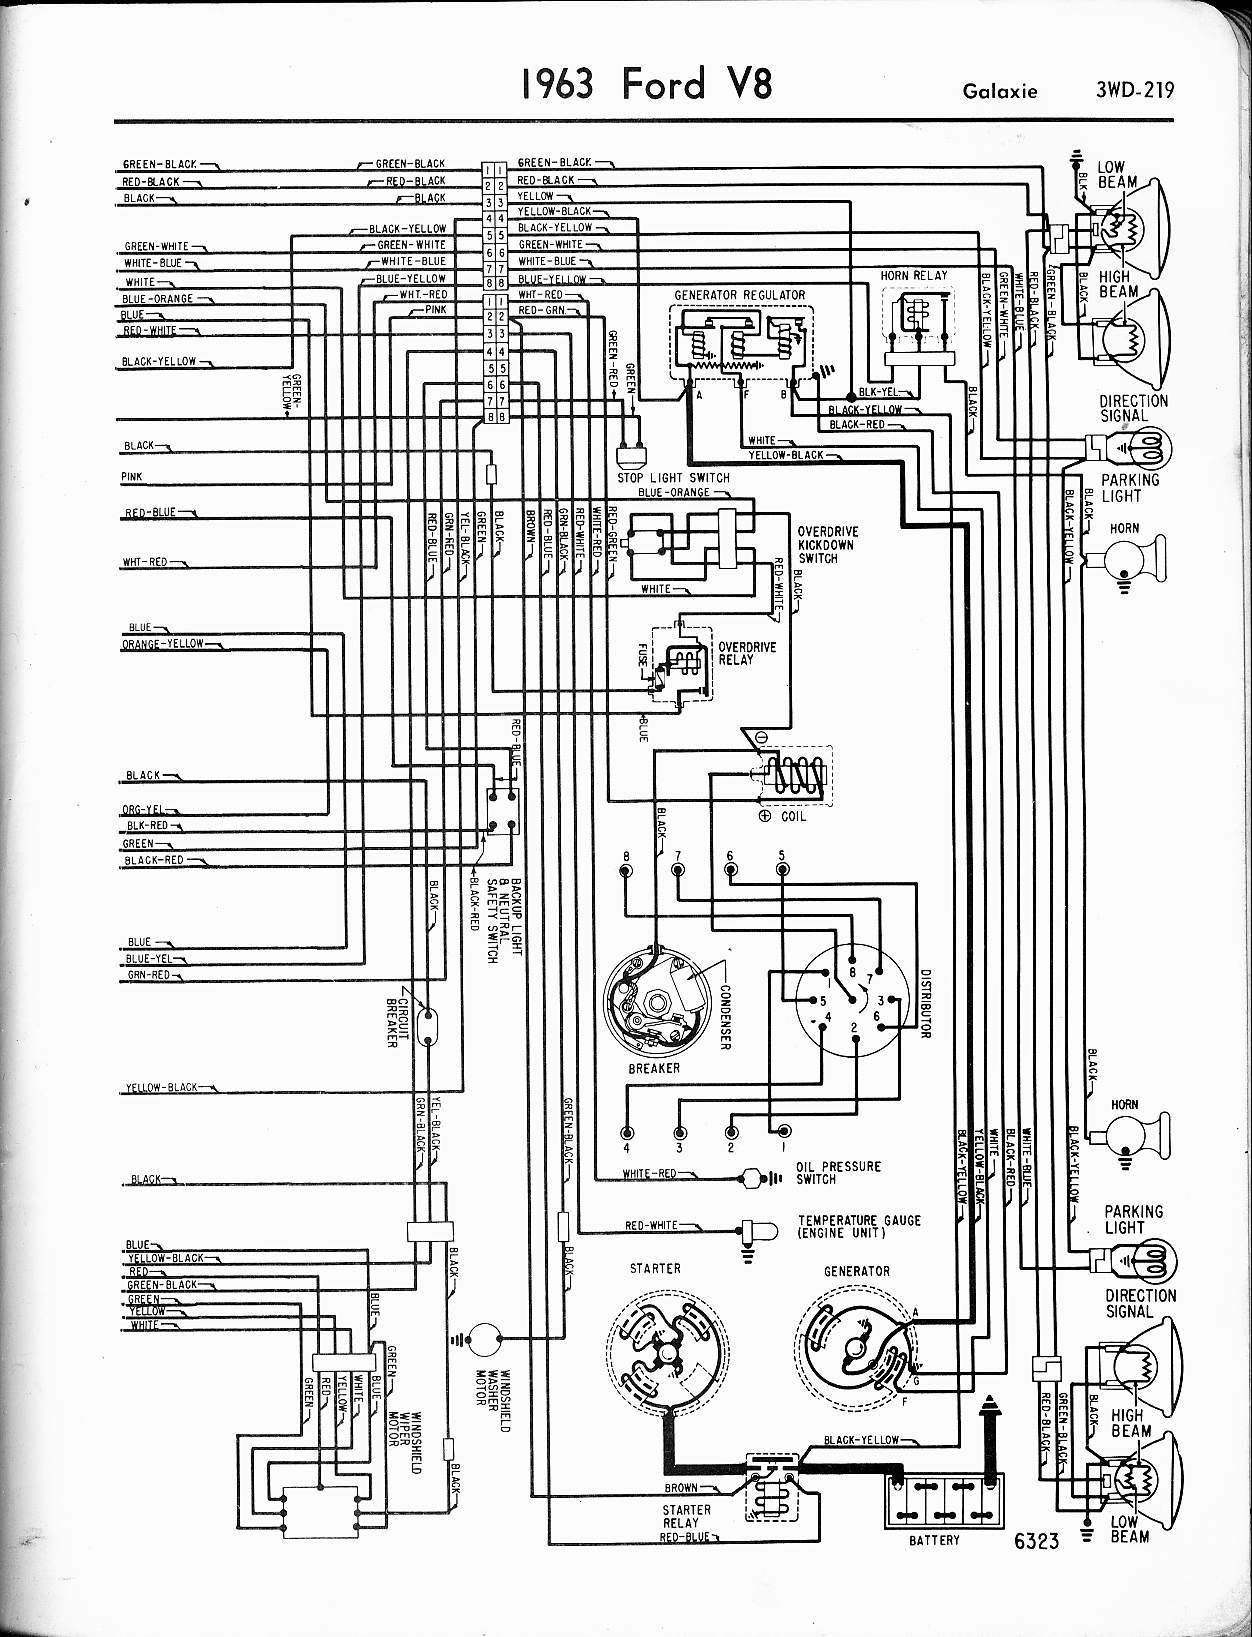 1969 Ford Galaxie Wiring Diagram Wiring Diagram Complete Complete Lionsclubviterbo It